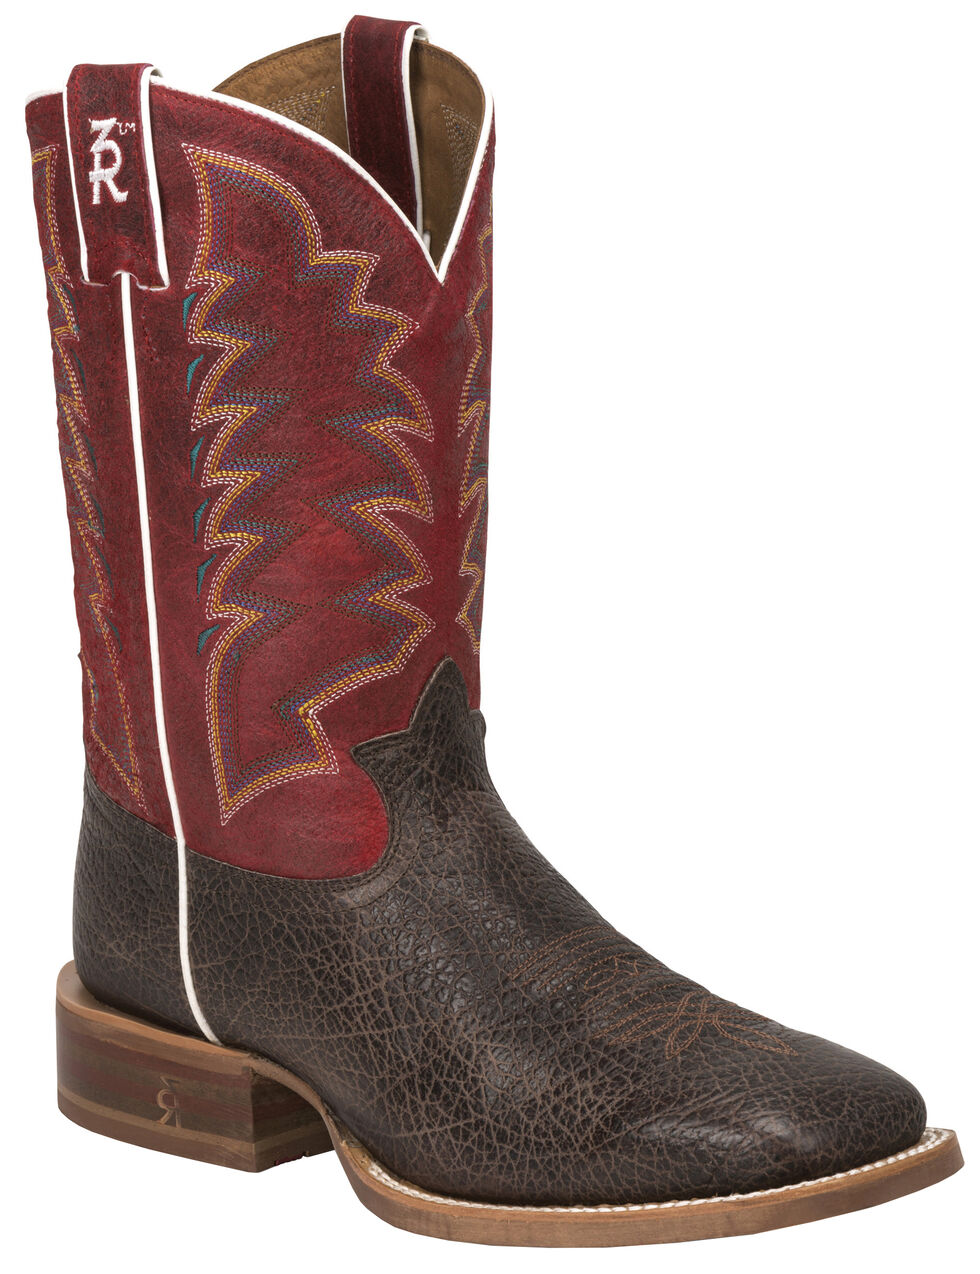 Tony Lama Cafe Bonham 3R Stockman Boots - Square Toe, Dark Brown, hi-res